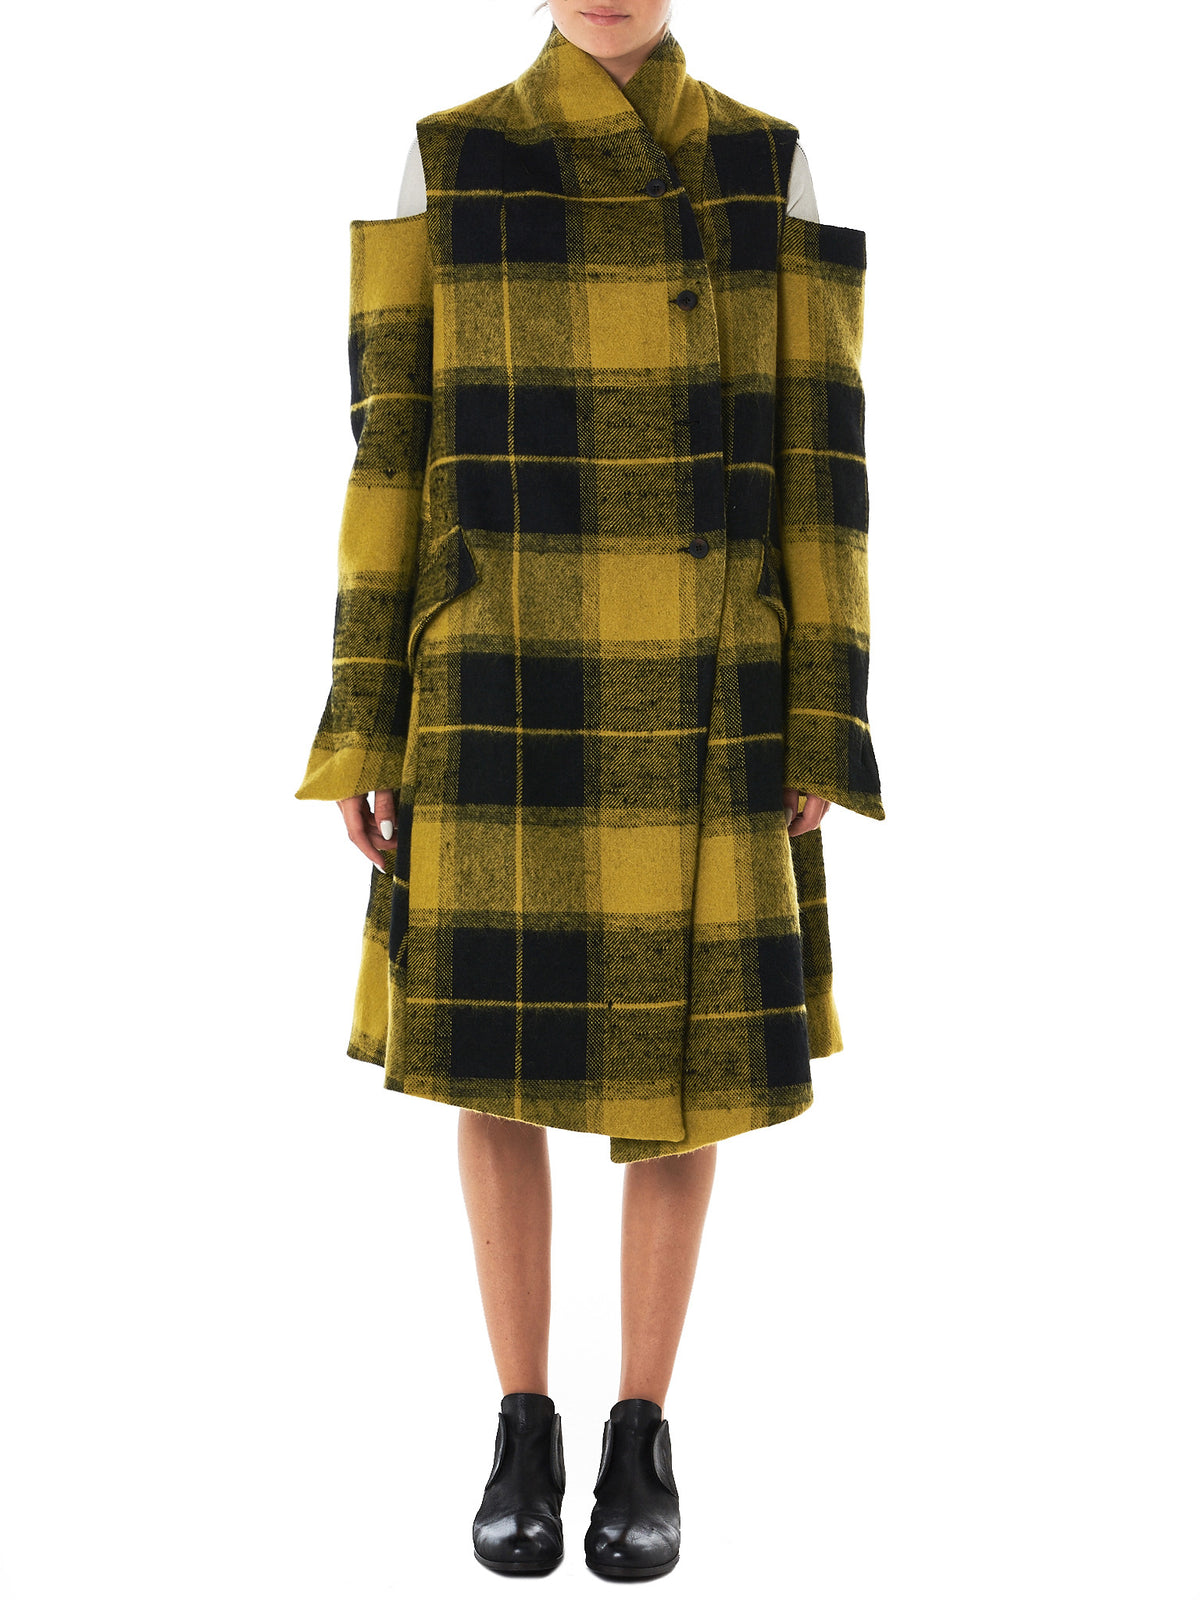 Lost & Found- HLorenzo- flannel coat front view